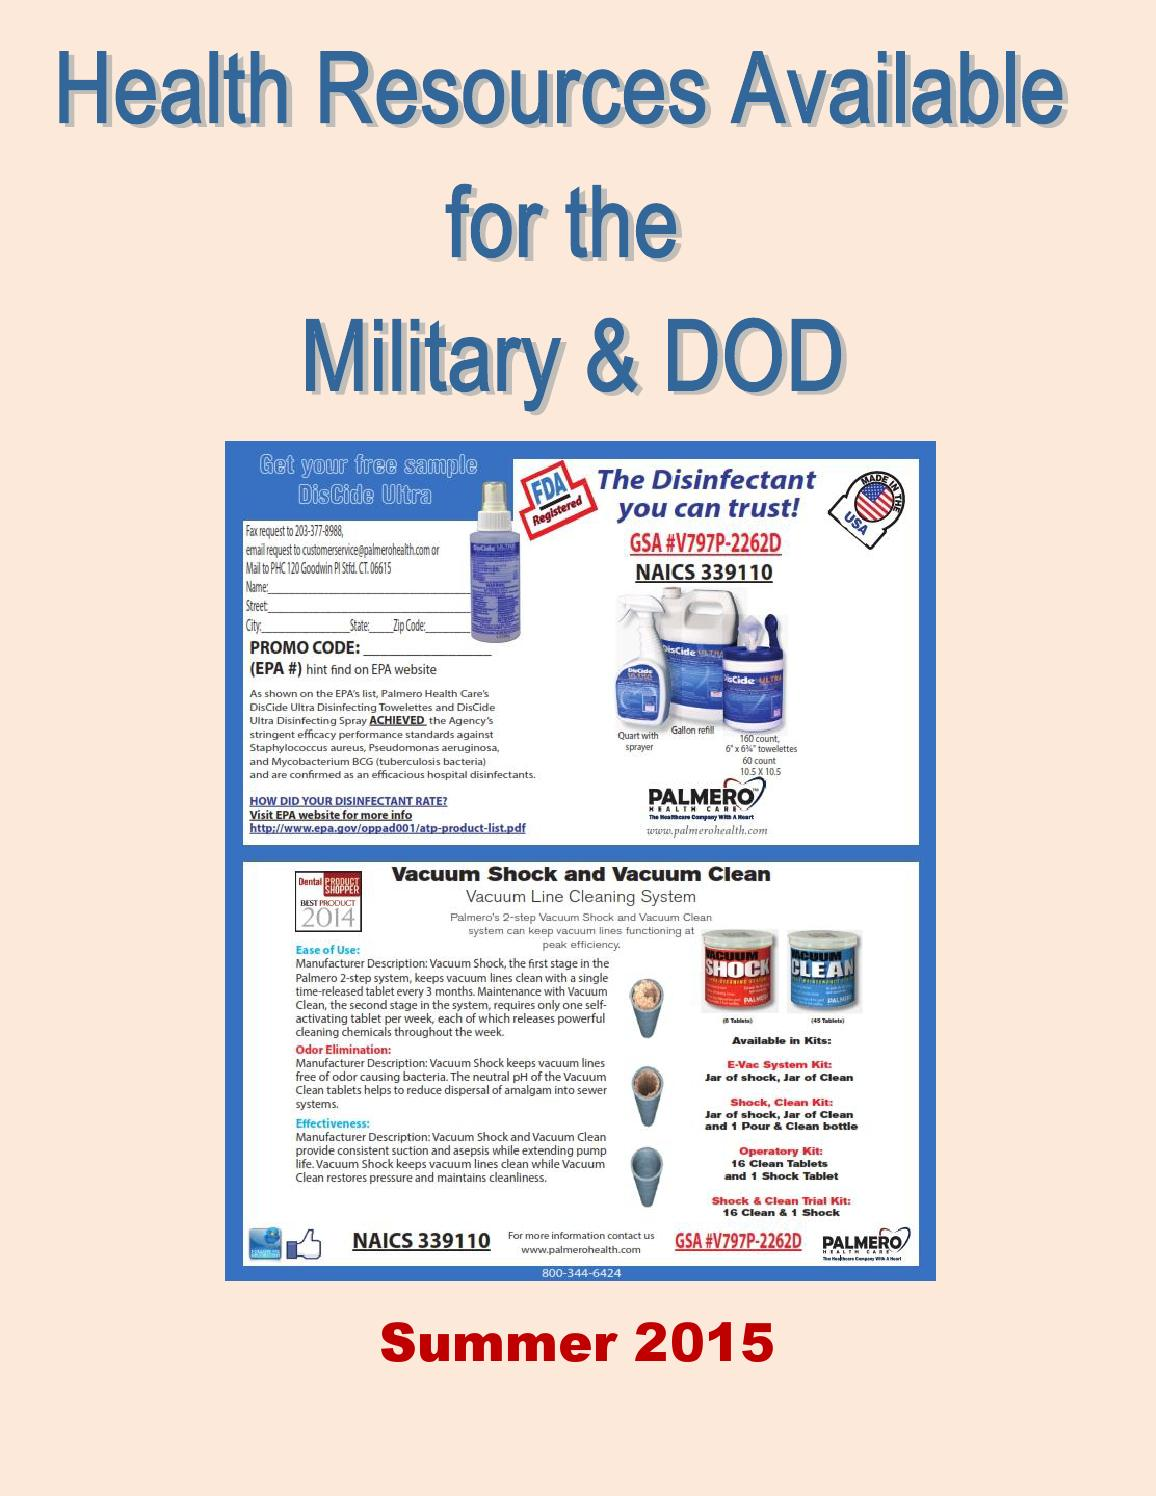 Health Resources Available for the Military & DOD